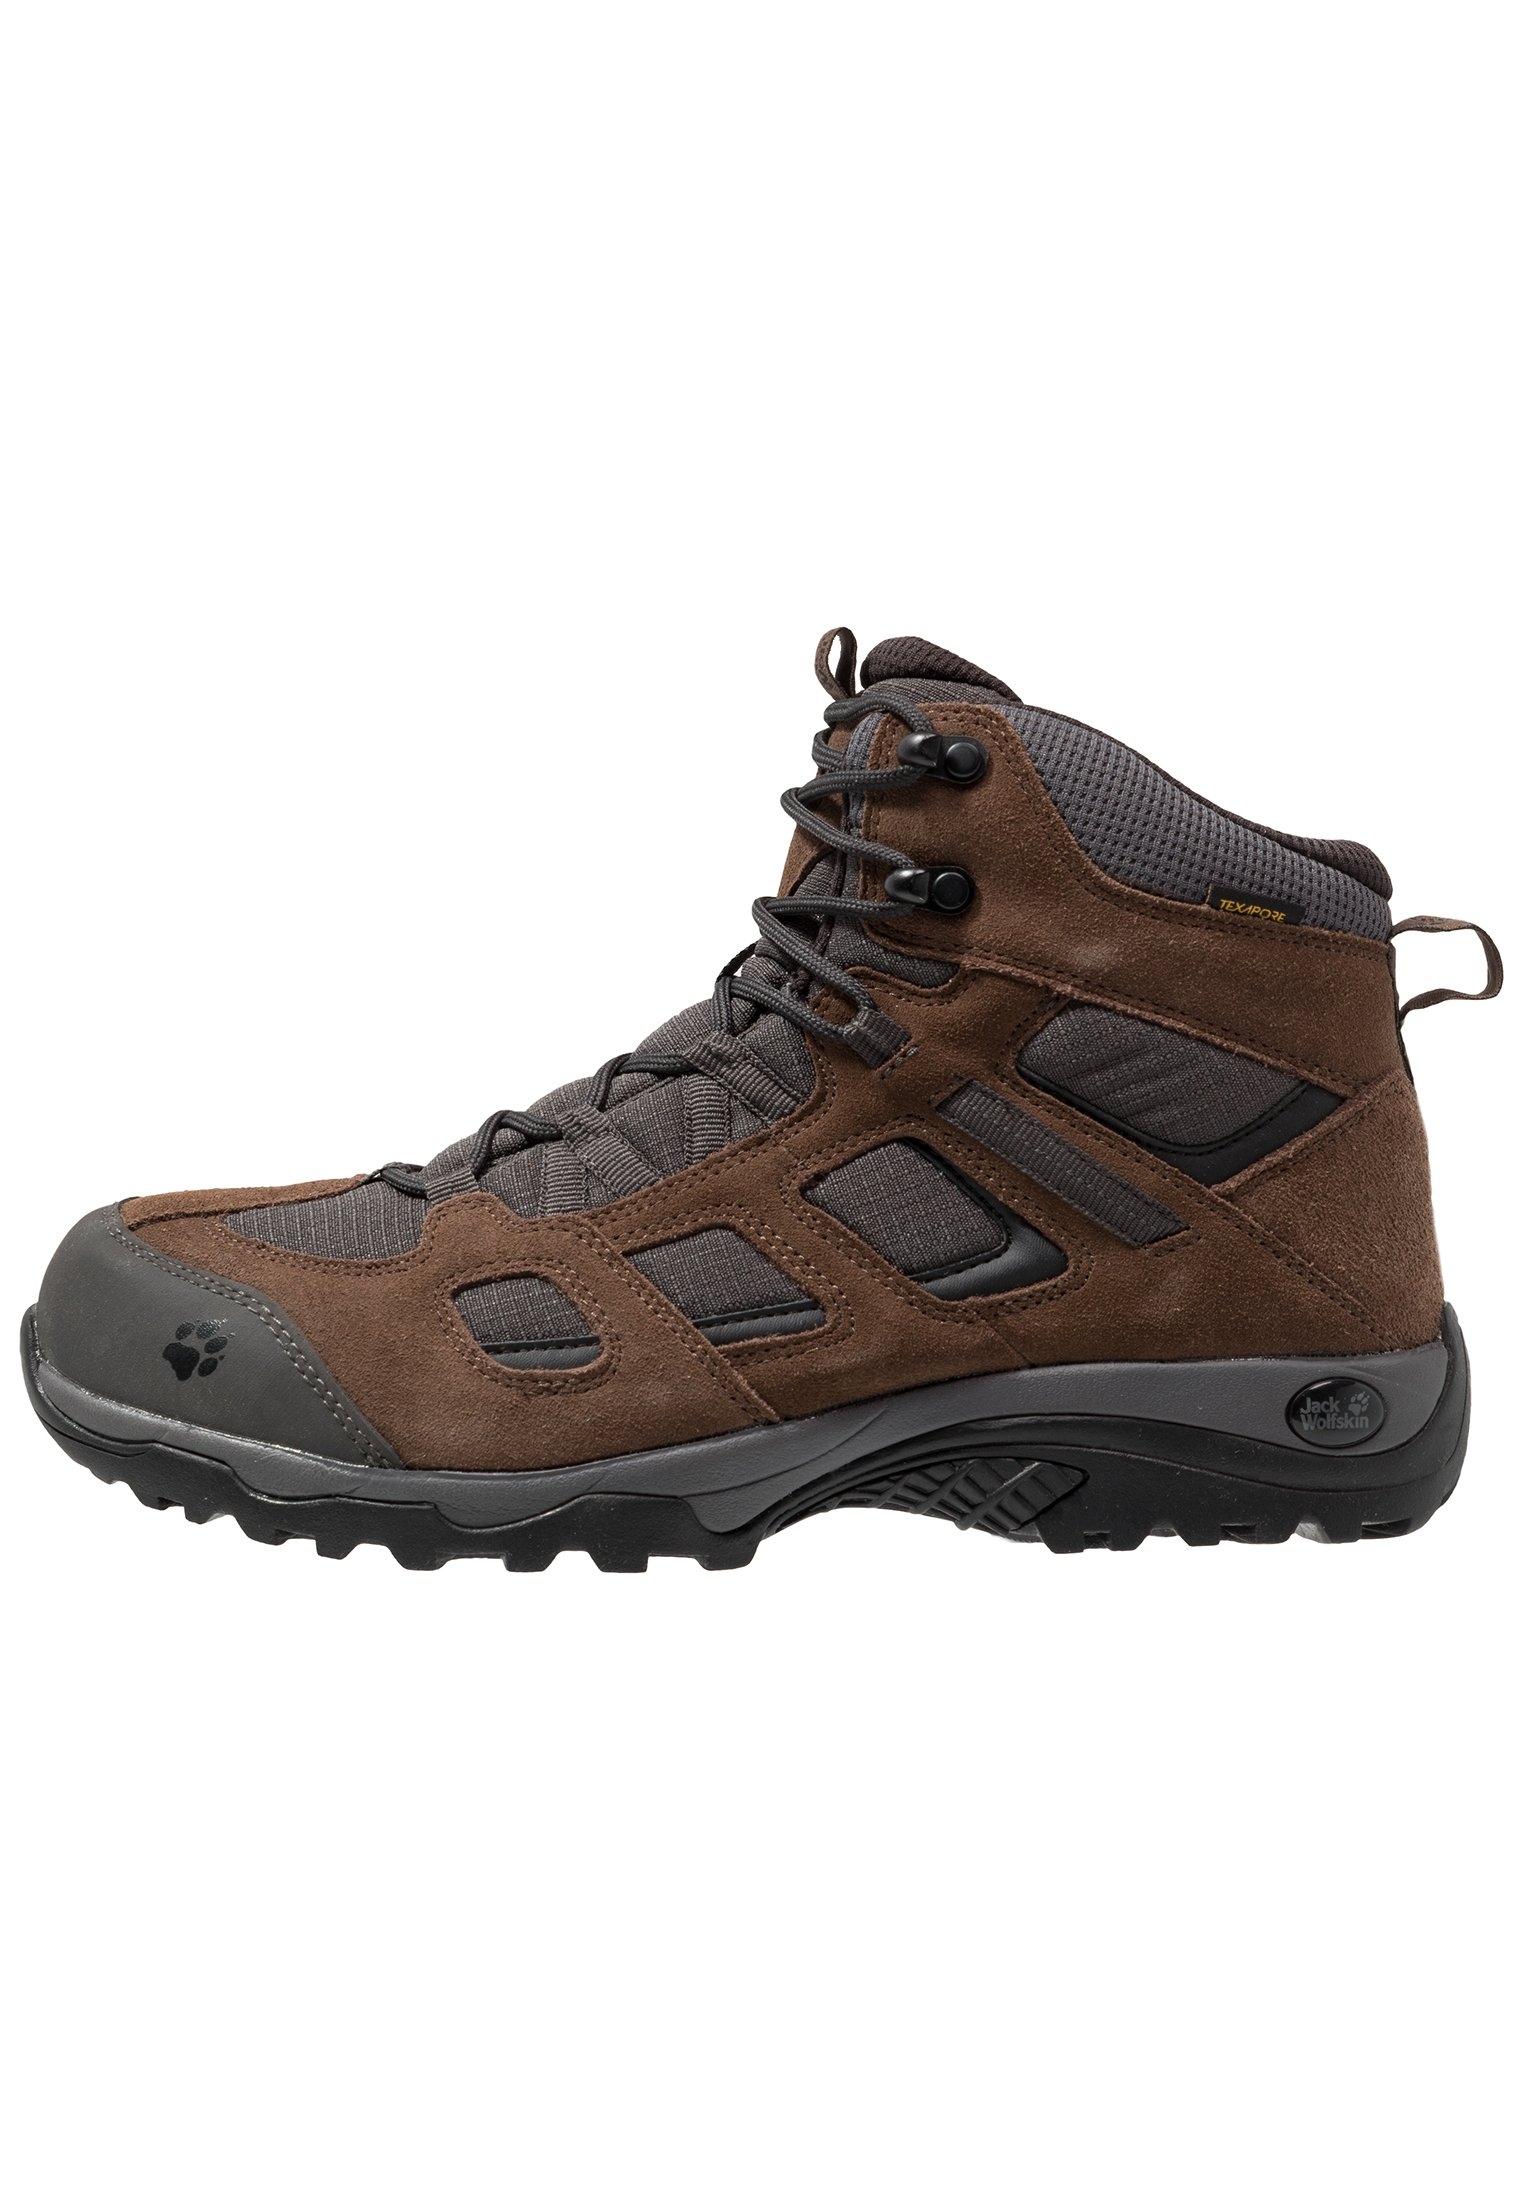 Jack Wolfskin VOJO HIKE 2 TEXAPORE LOW Hikingschuh